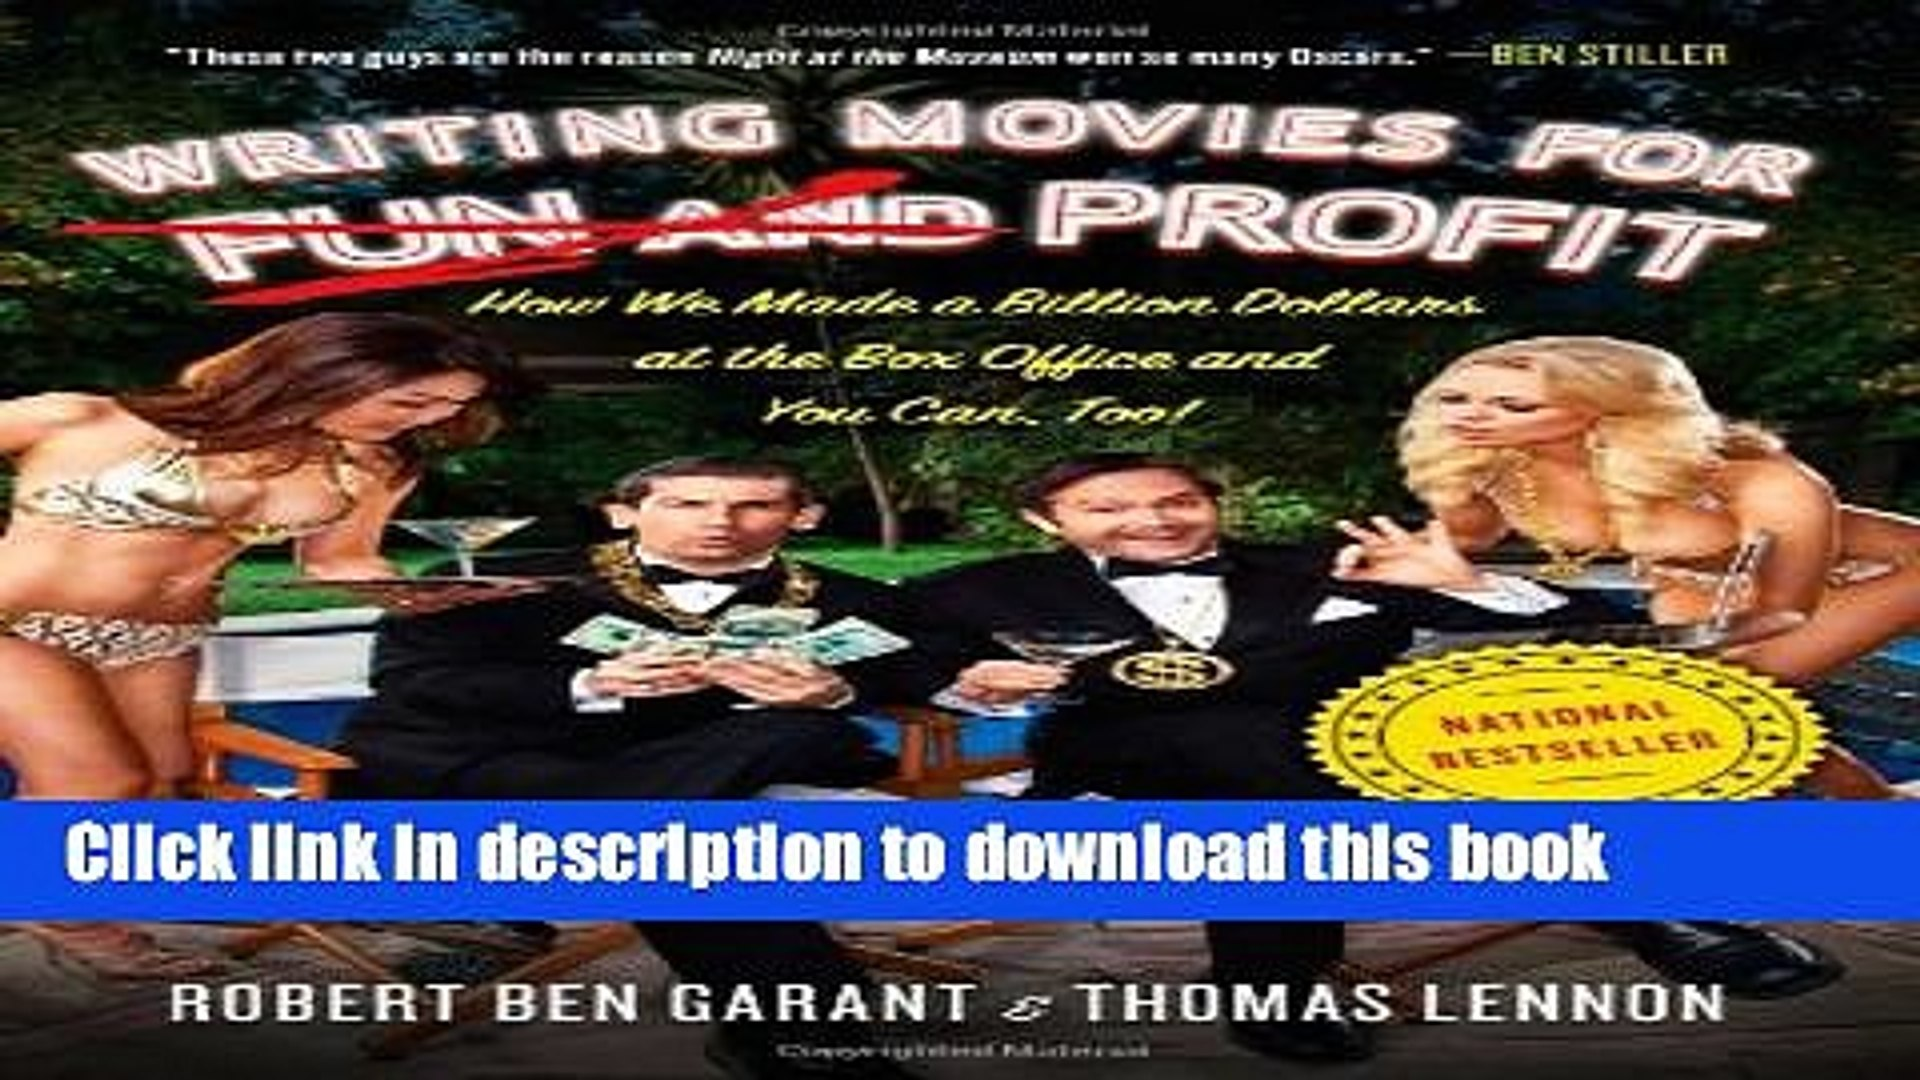 [Free] Writing Movies for Fun and Profit: How We Made a Billion Dollars at the Box Office and You